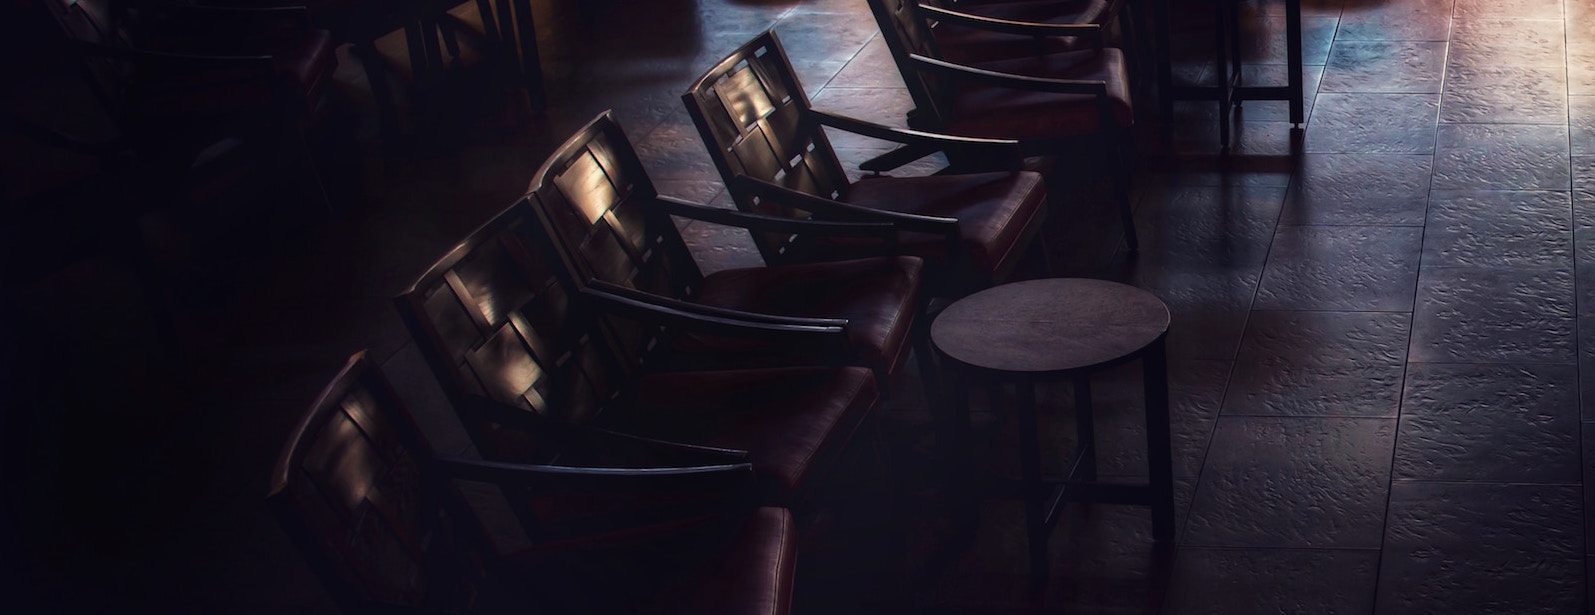 A set of chairs placed in the Theater area for a screening inside The Ramble Hotel.